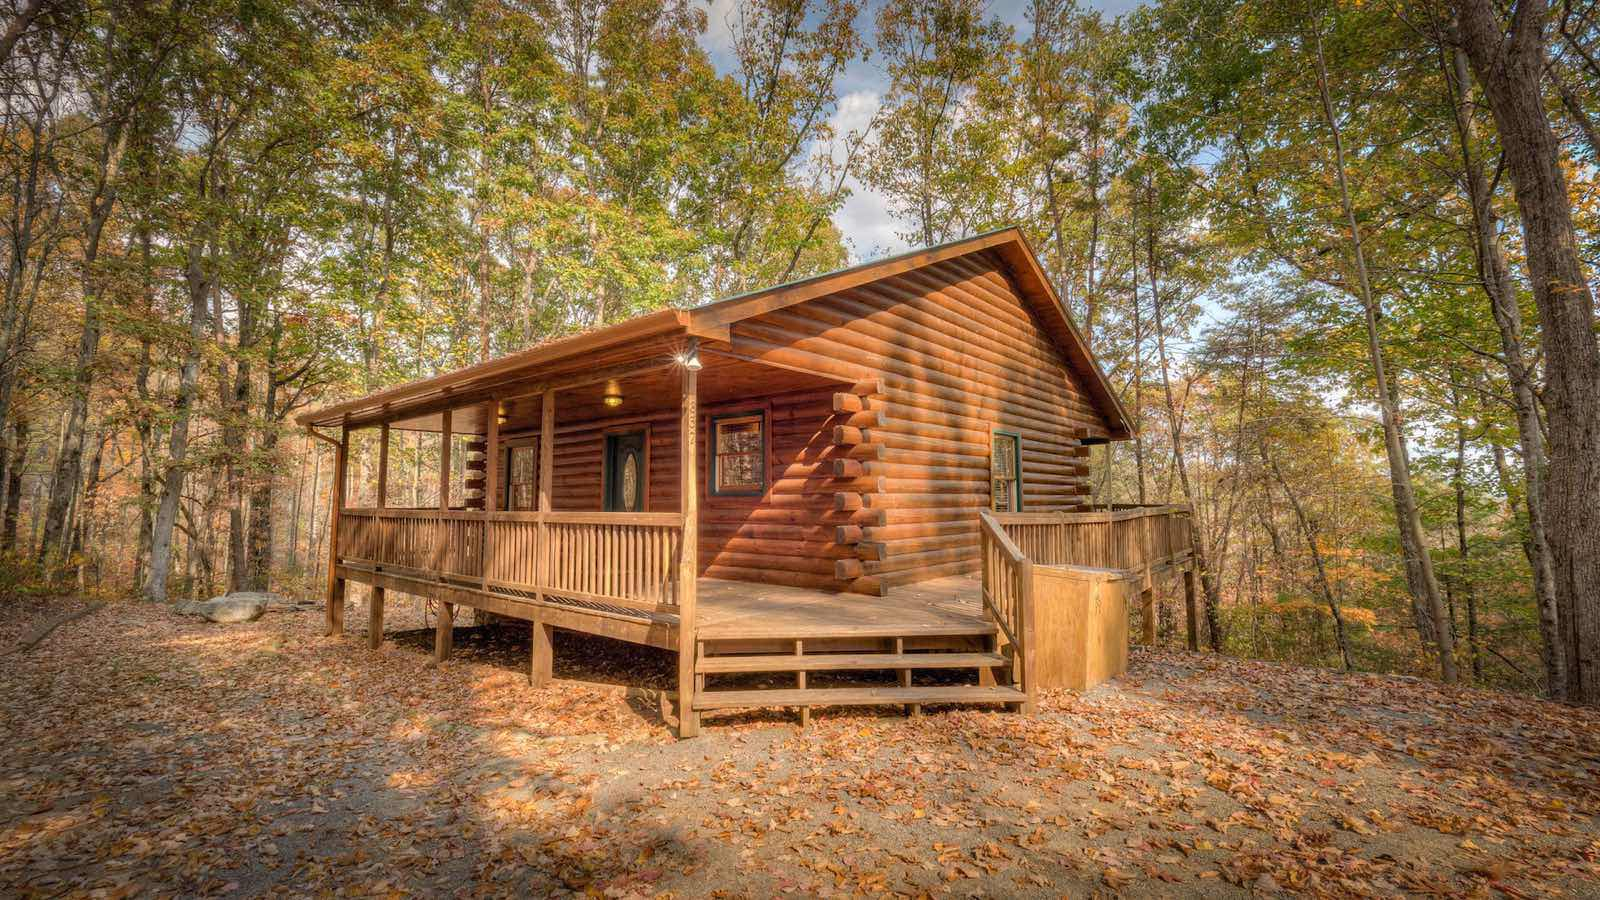 Blue ridge mountain cabin rentals pretty transexual for Rent a cabin in georgia mountains